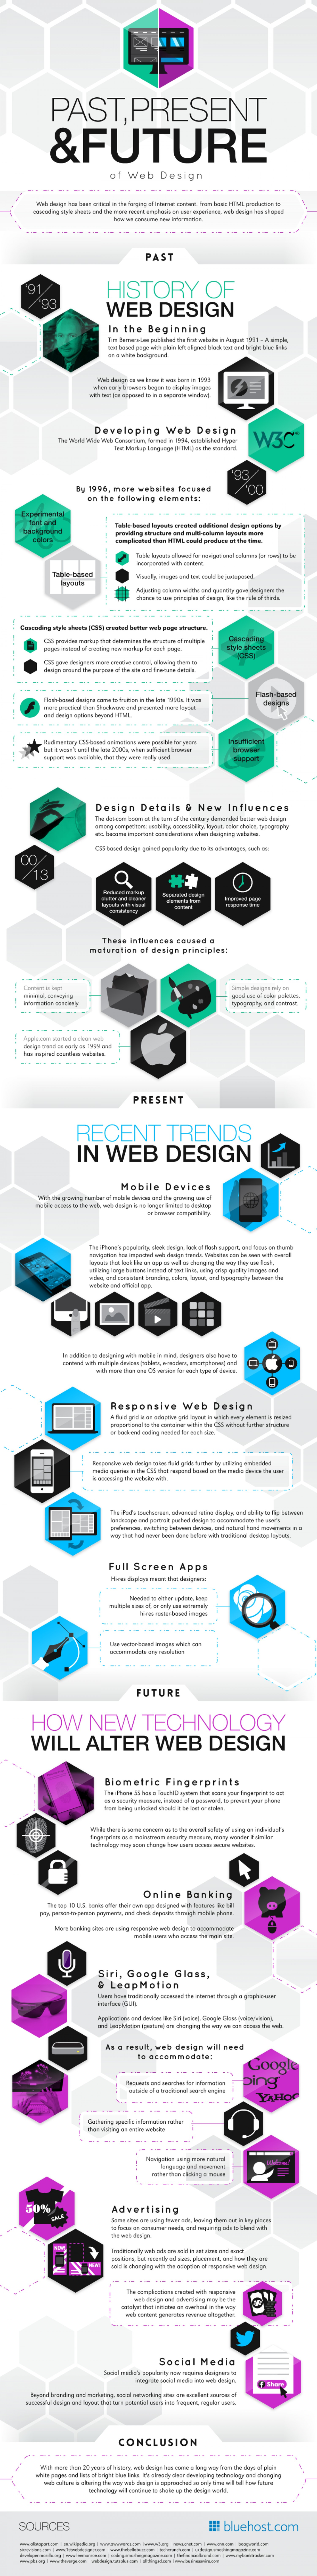 1000 images about web design on pinterest website design layout how to design and landing pages